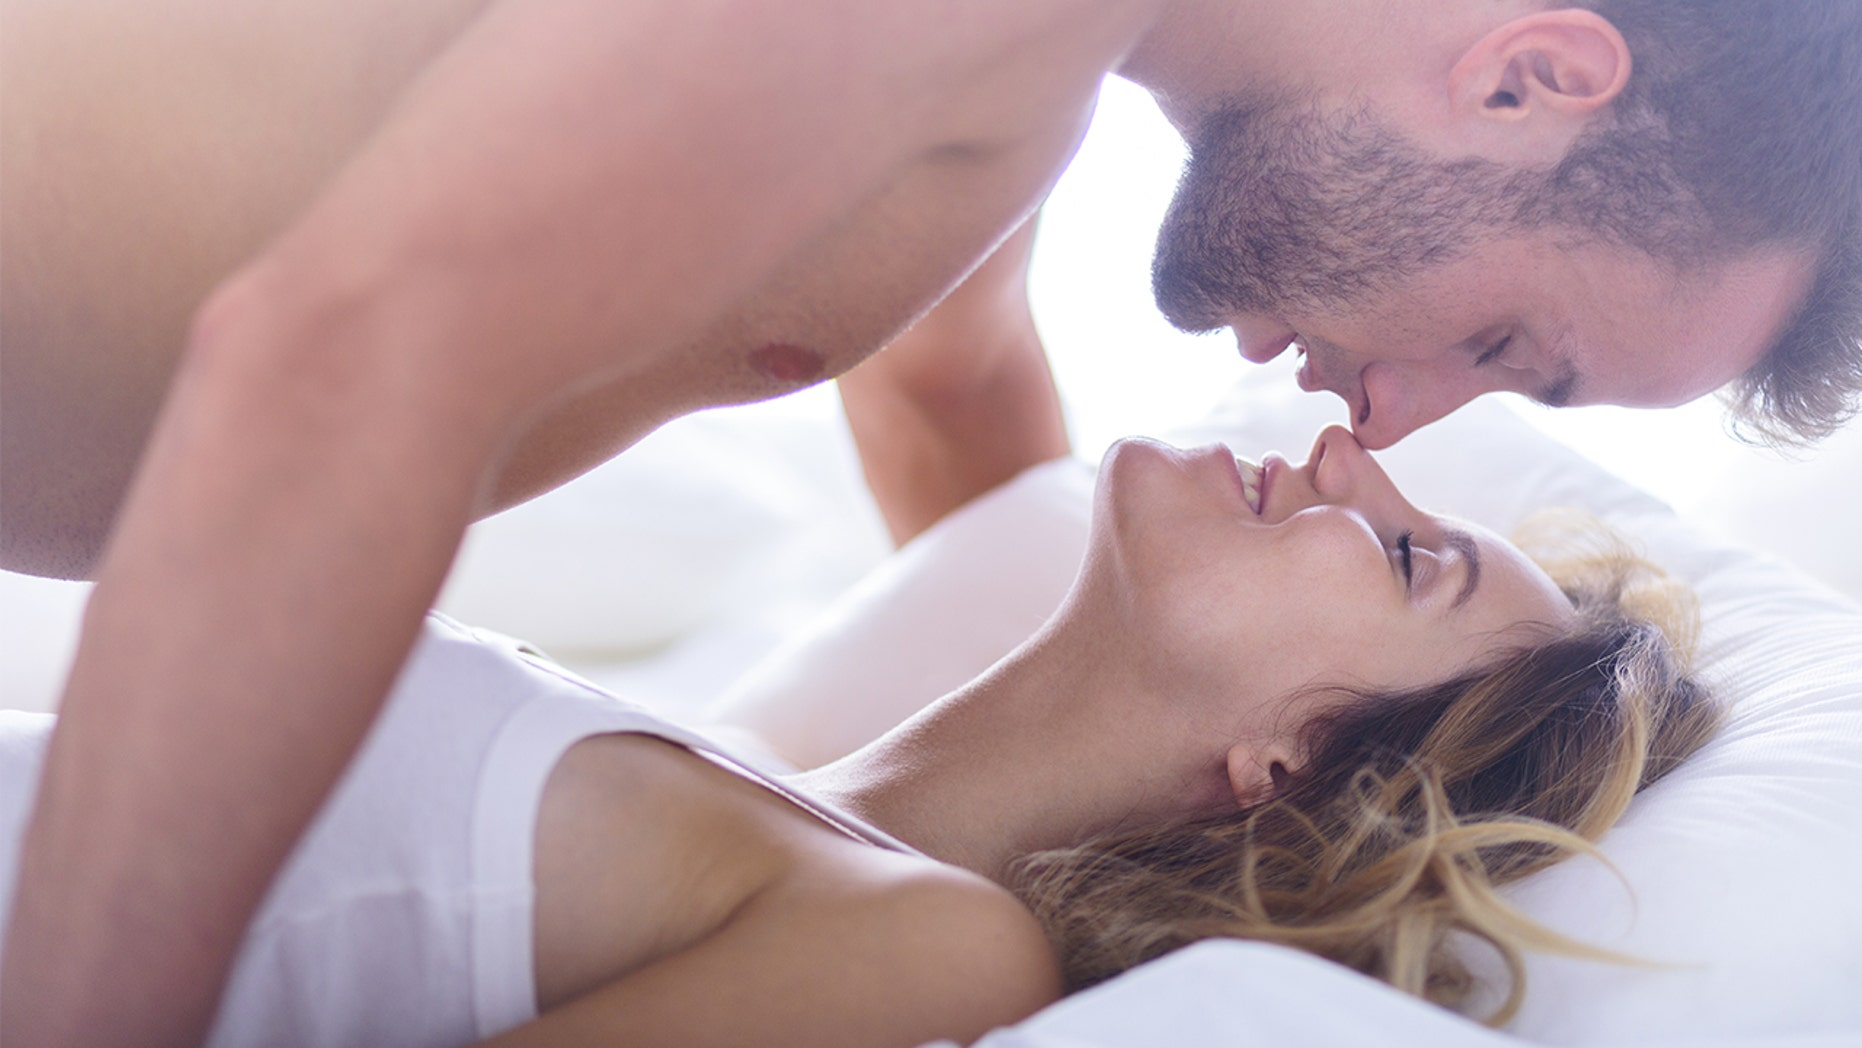 New Studies Reveal How To Have More Passionate Sex